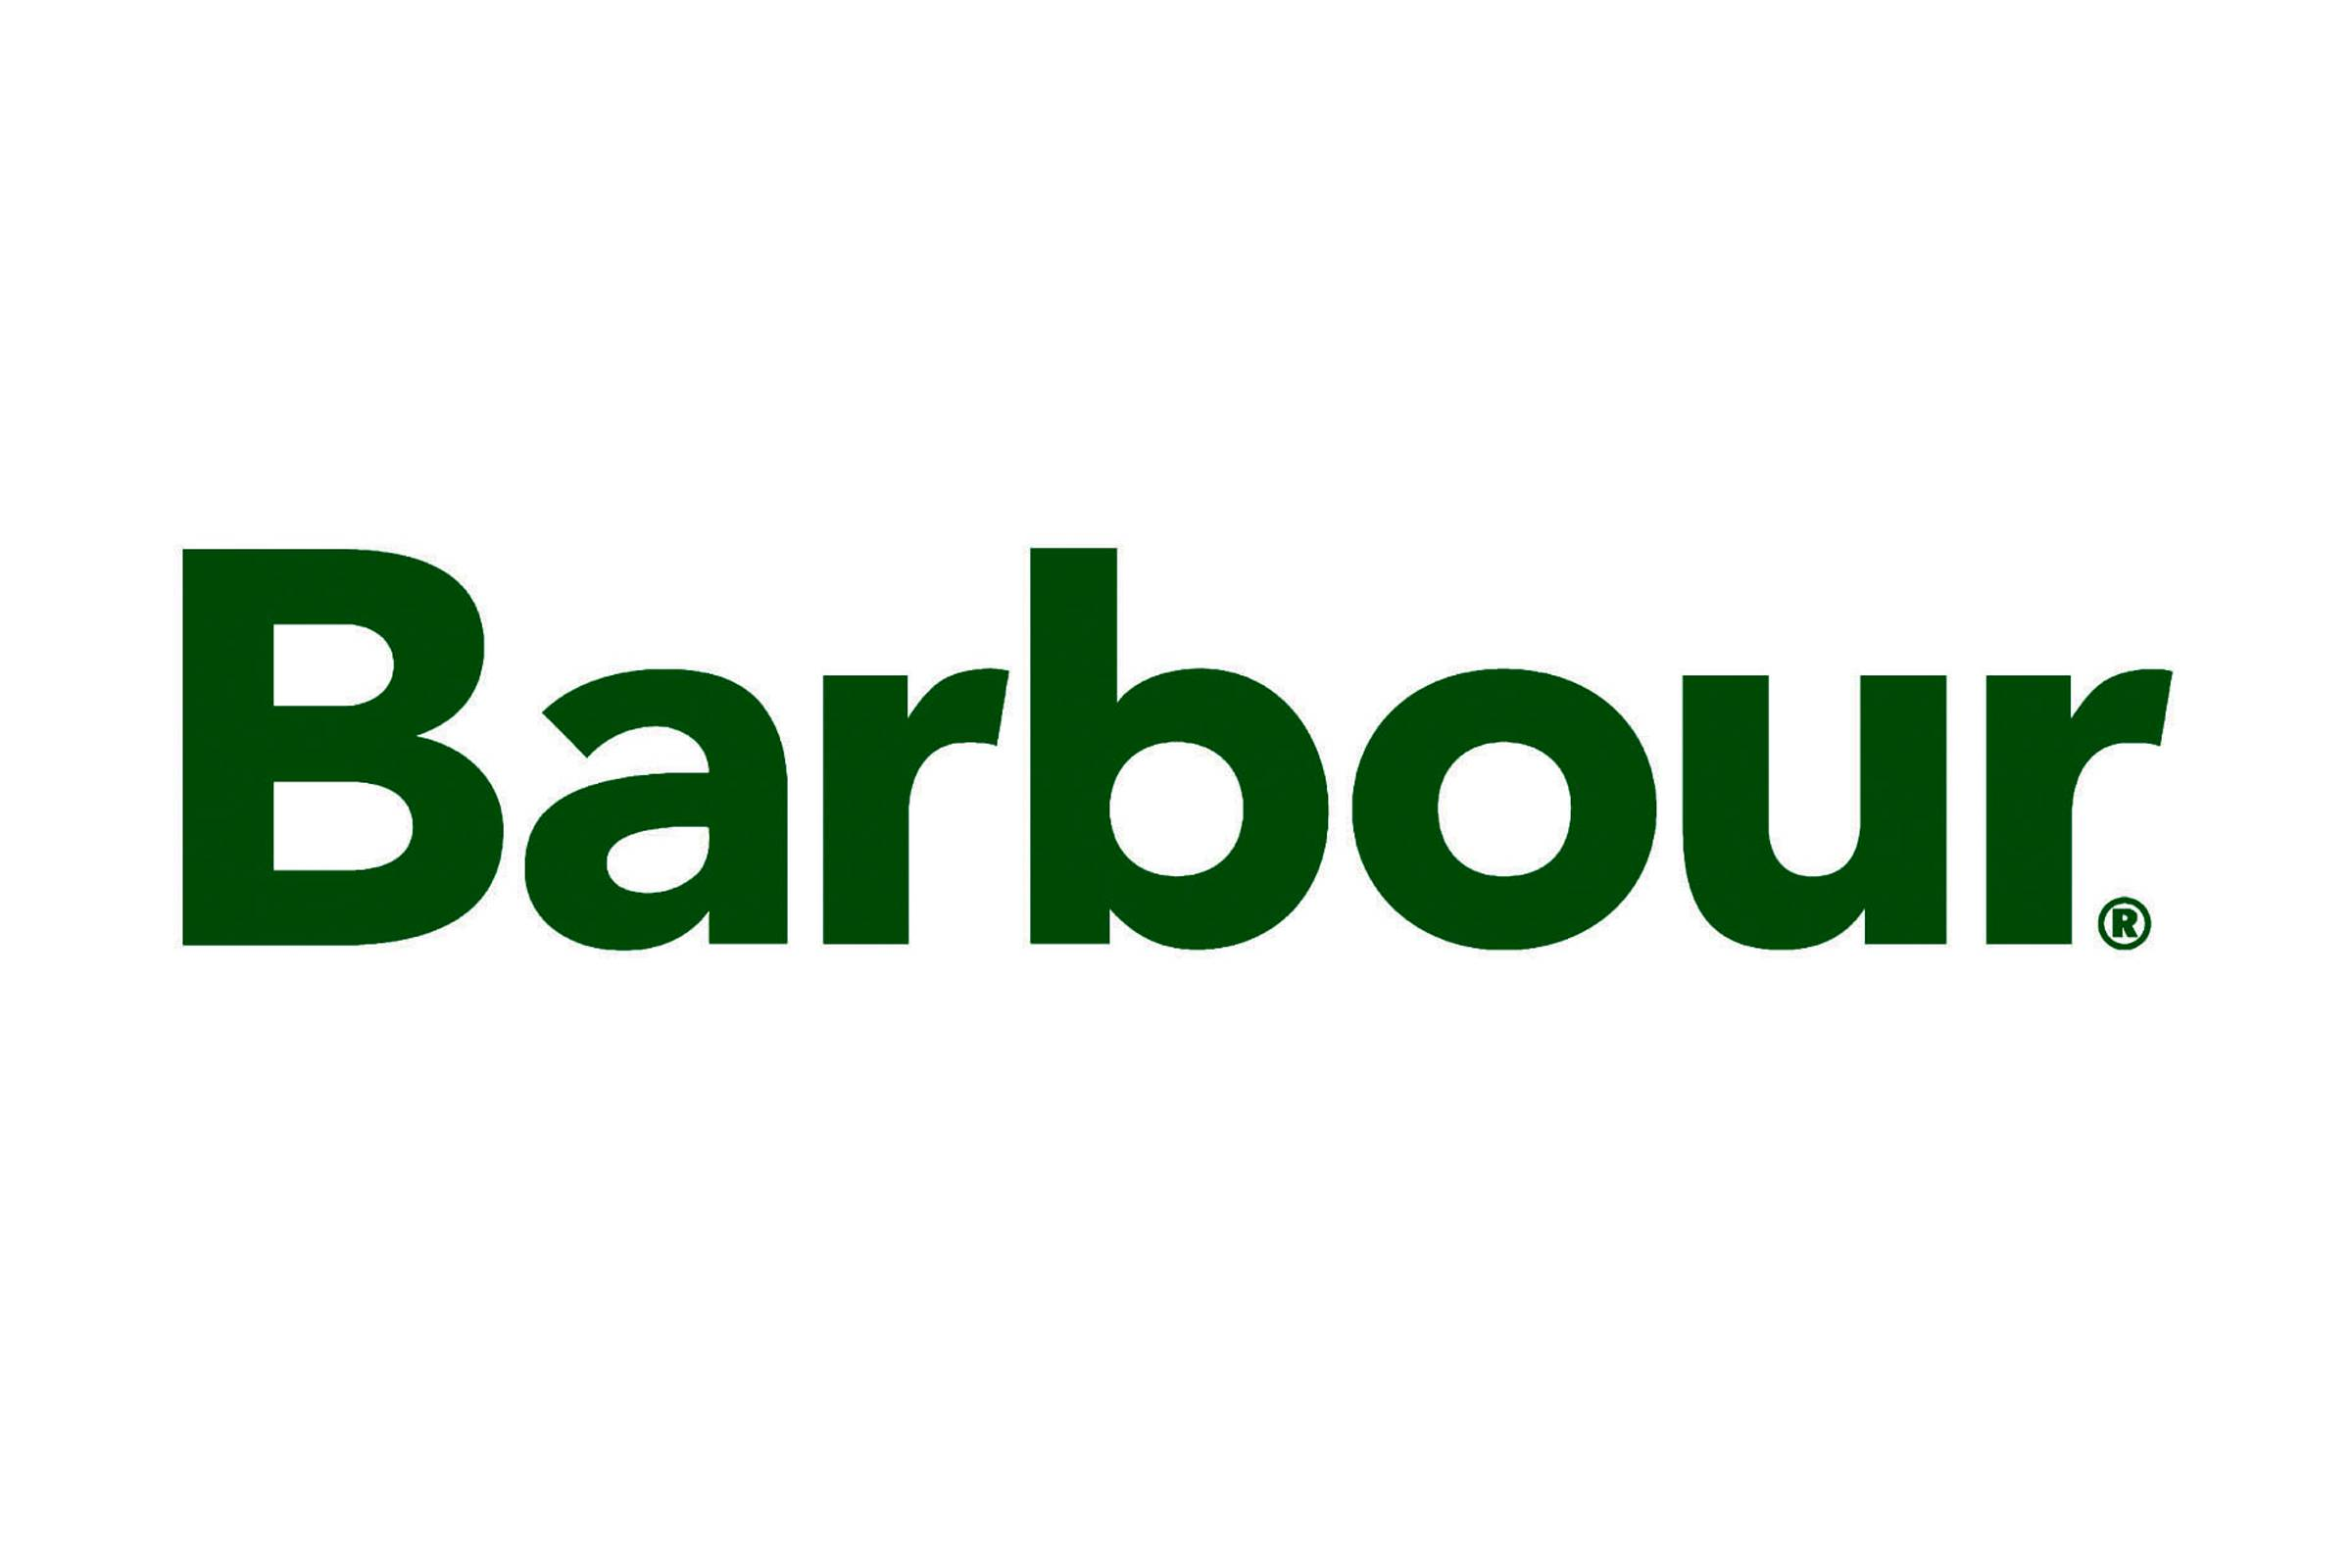 4. Barbour